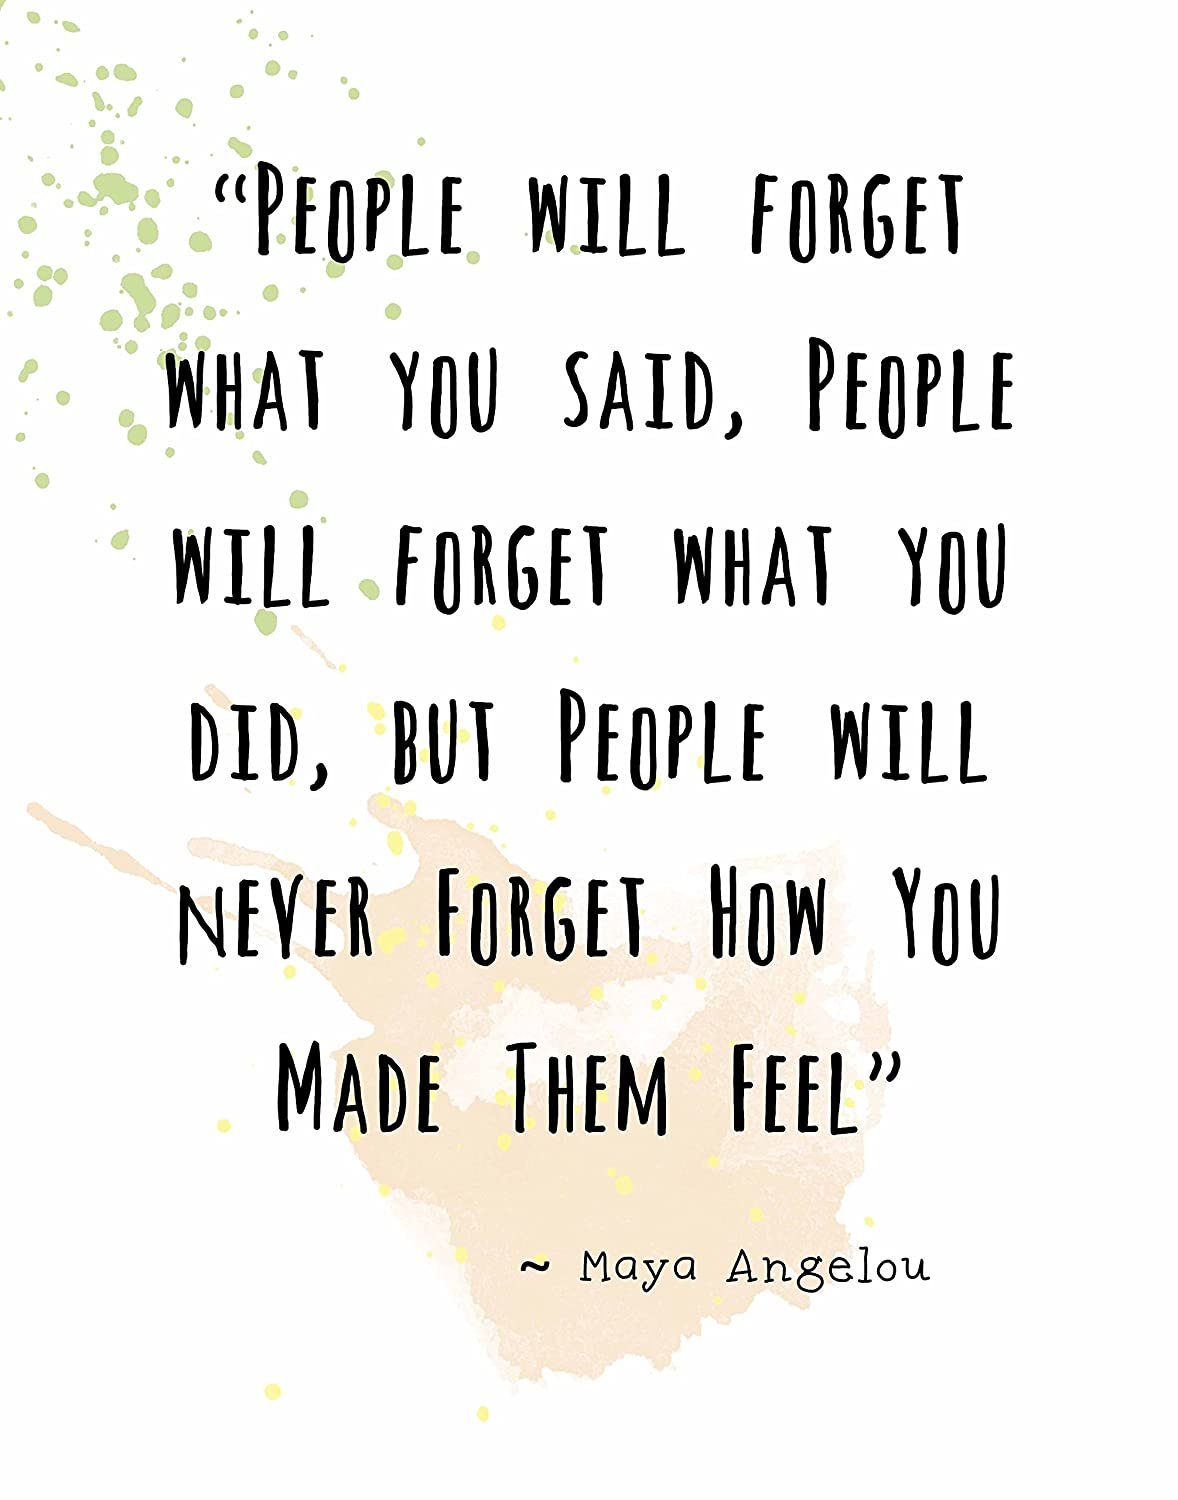 how you made them feel quote